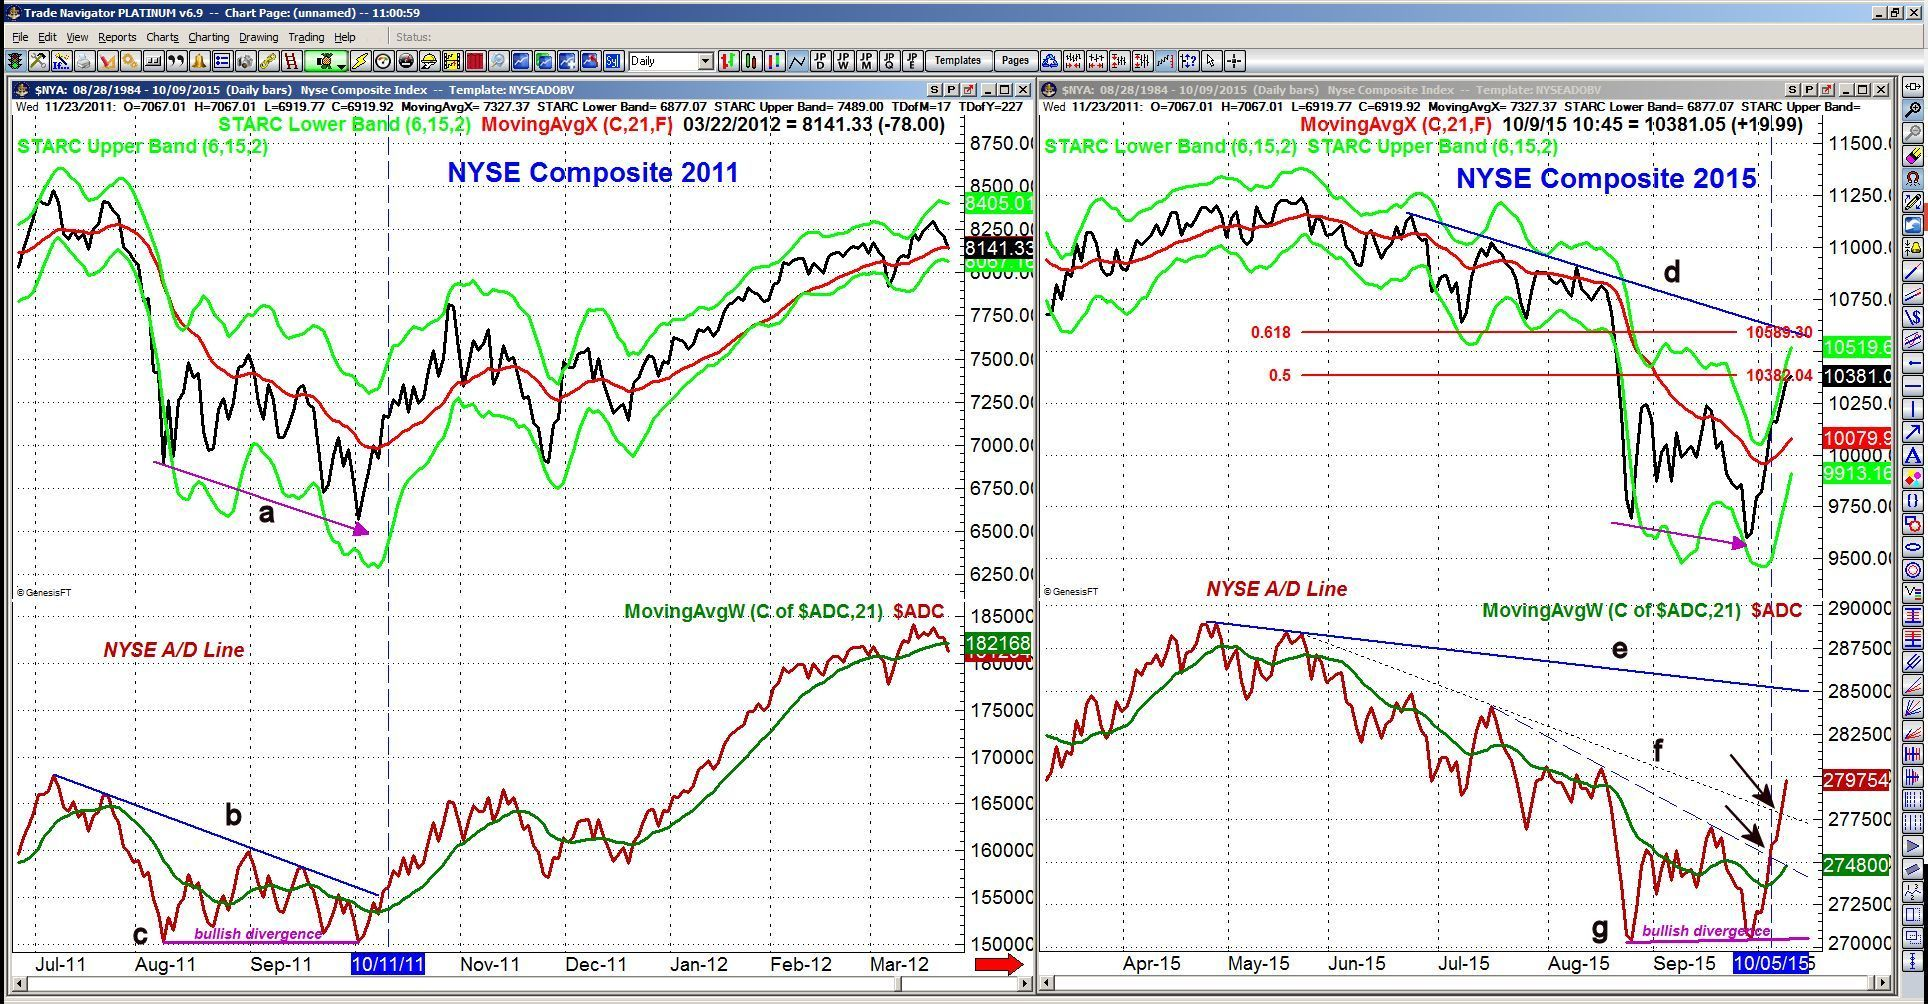 NYSE Composite Chart - ViperReport.com